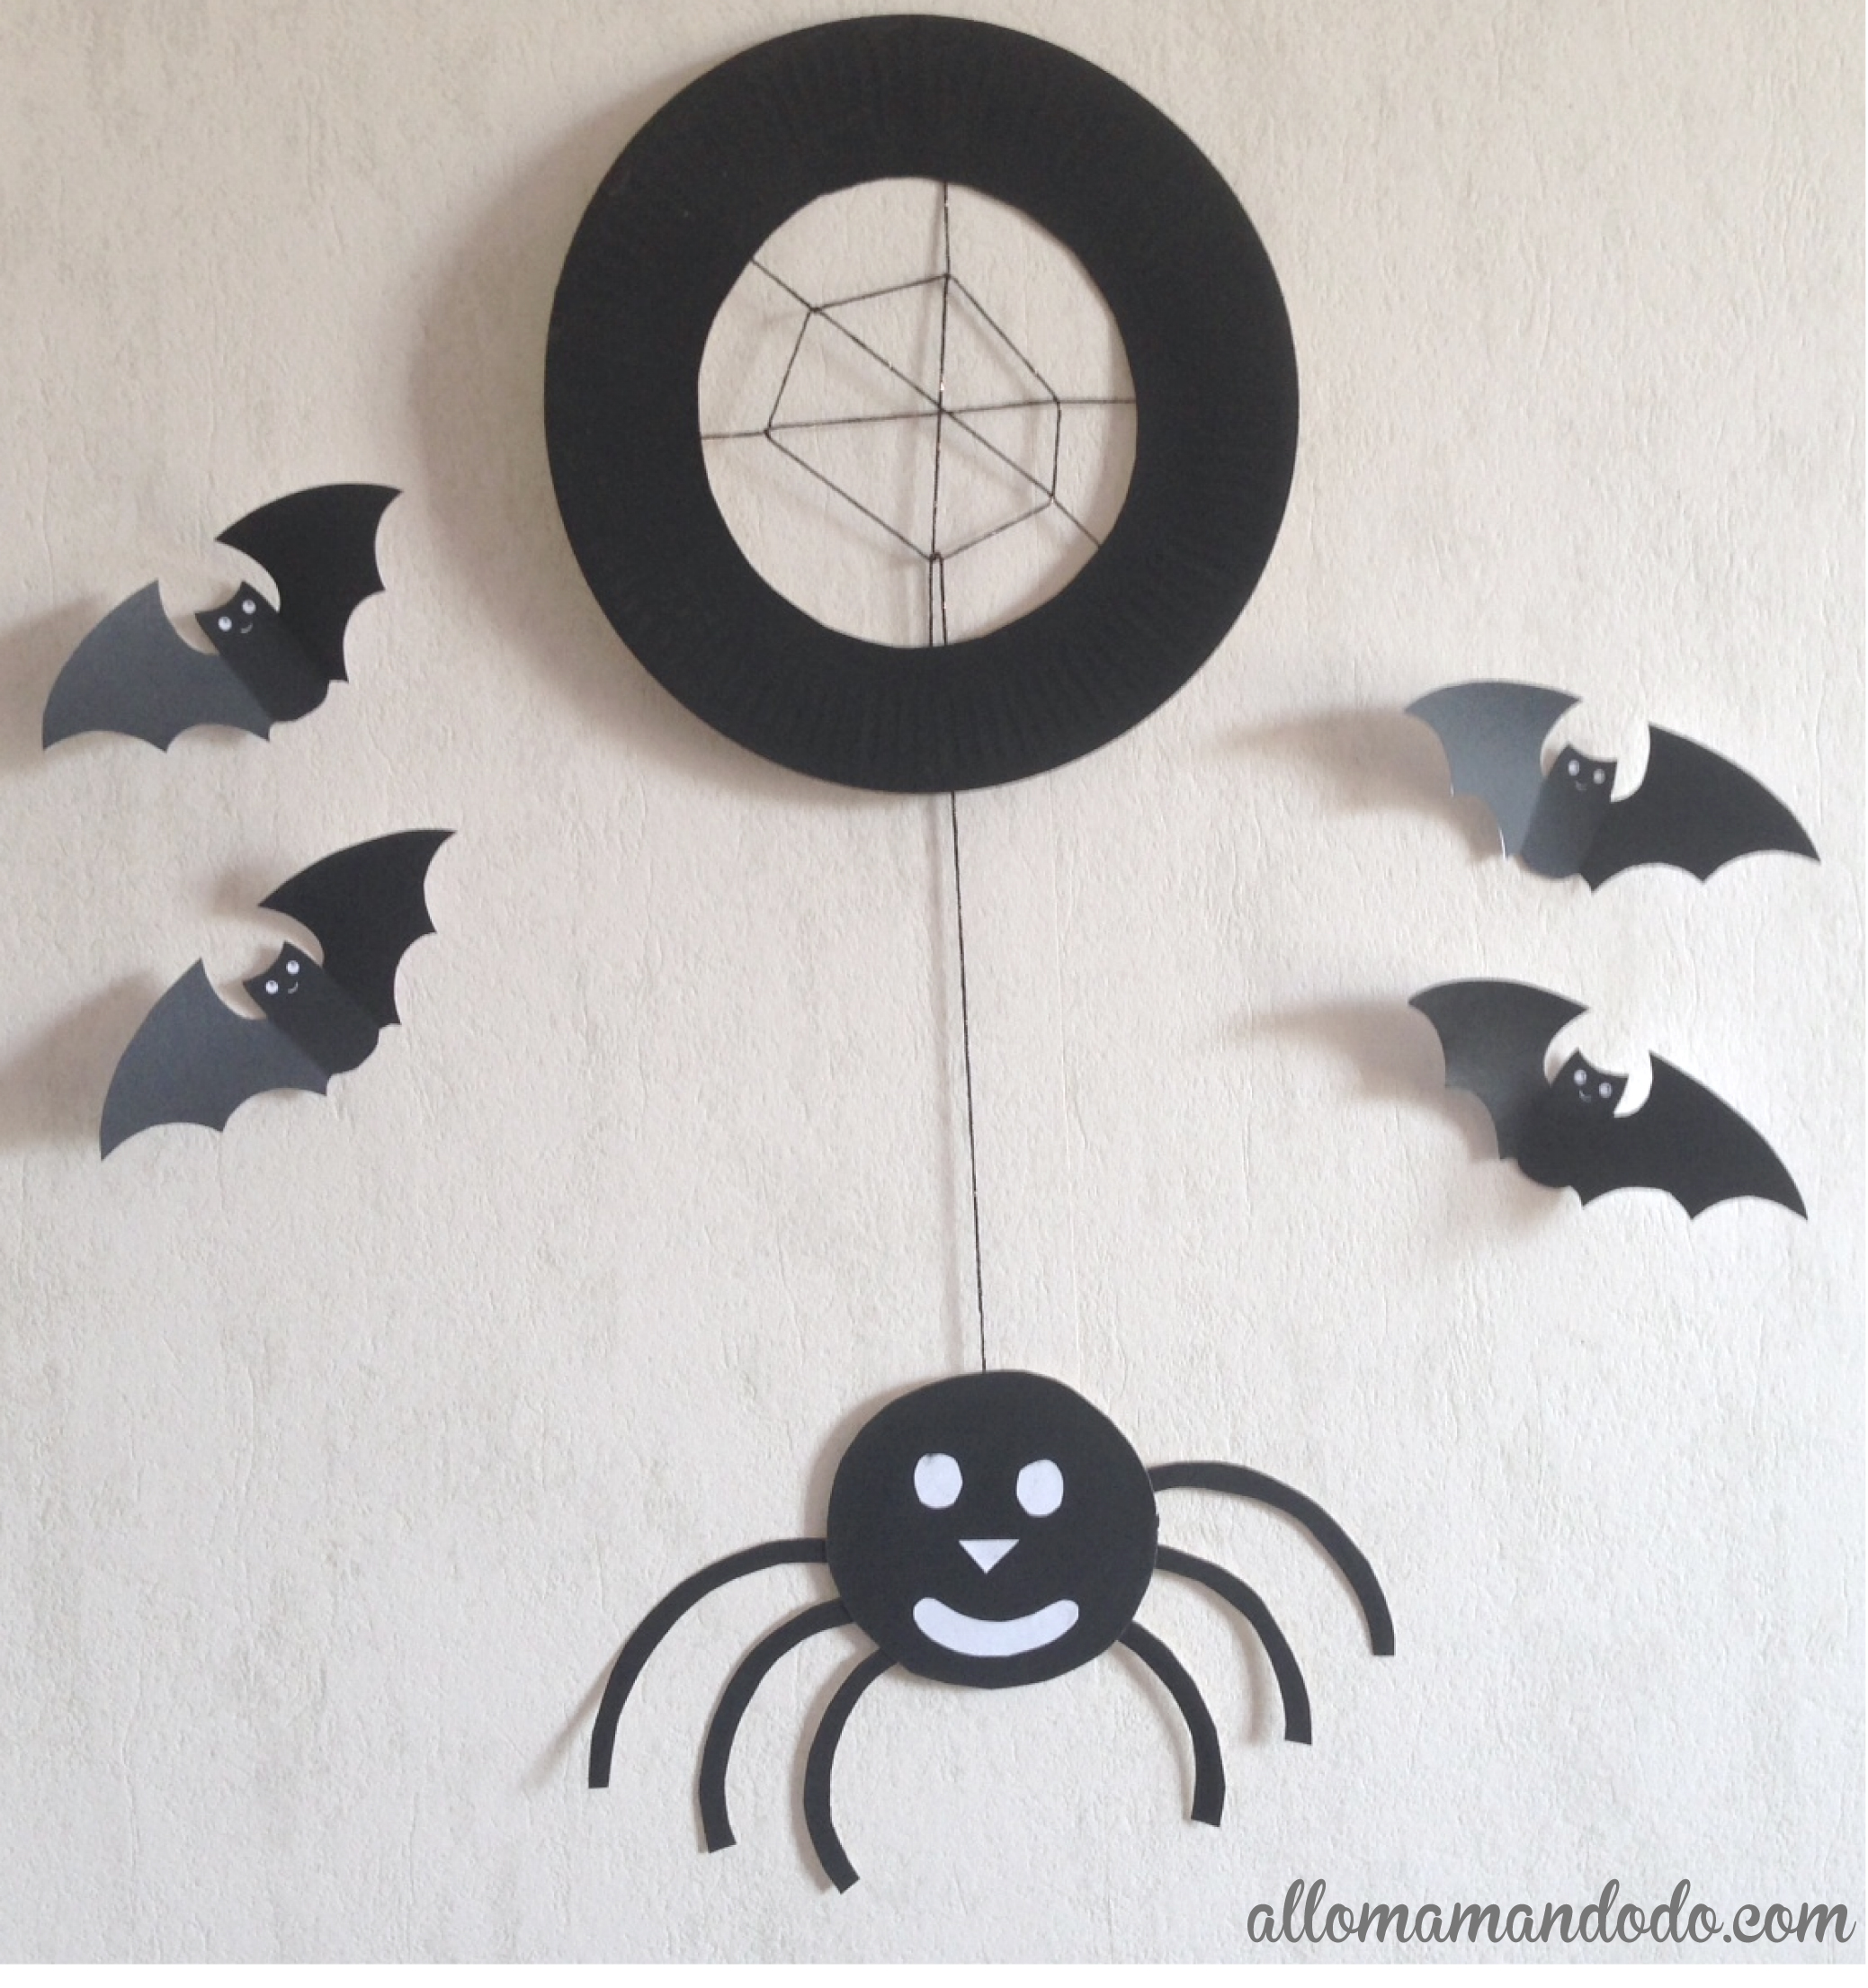 tuto diy d 39 halloween l 39 araign e base d 39 assiette en. Black Bedroom Furniture Sets. Home Design Ideas